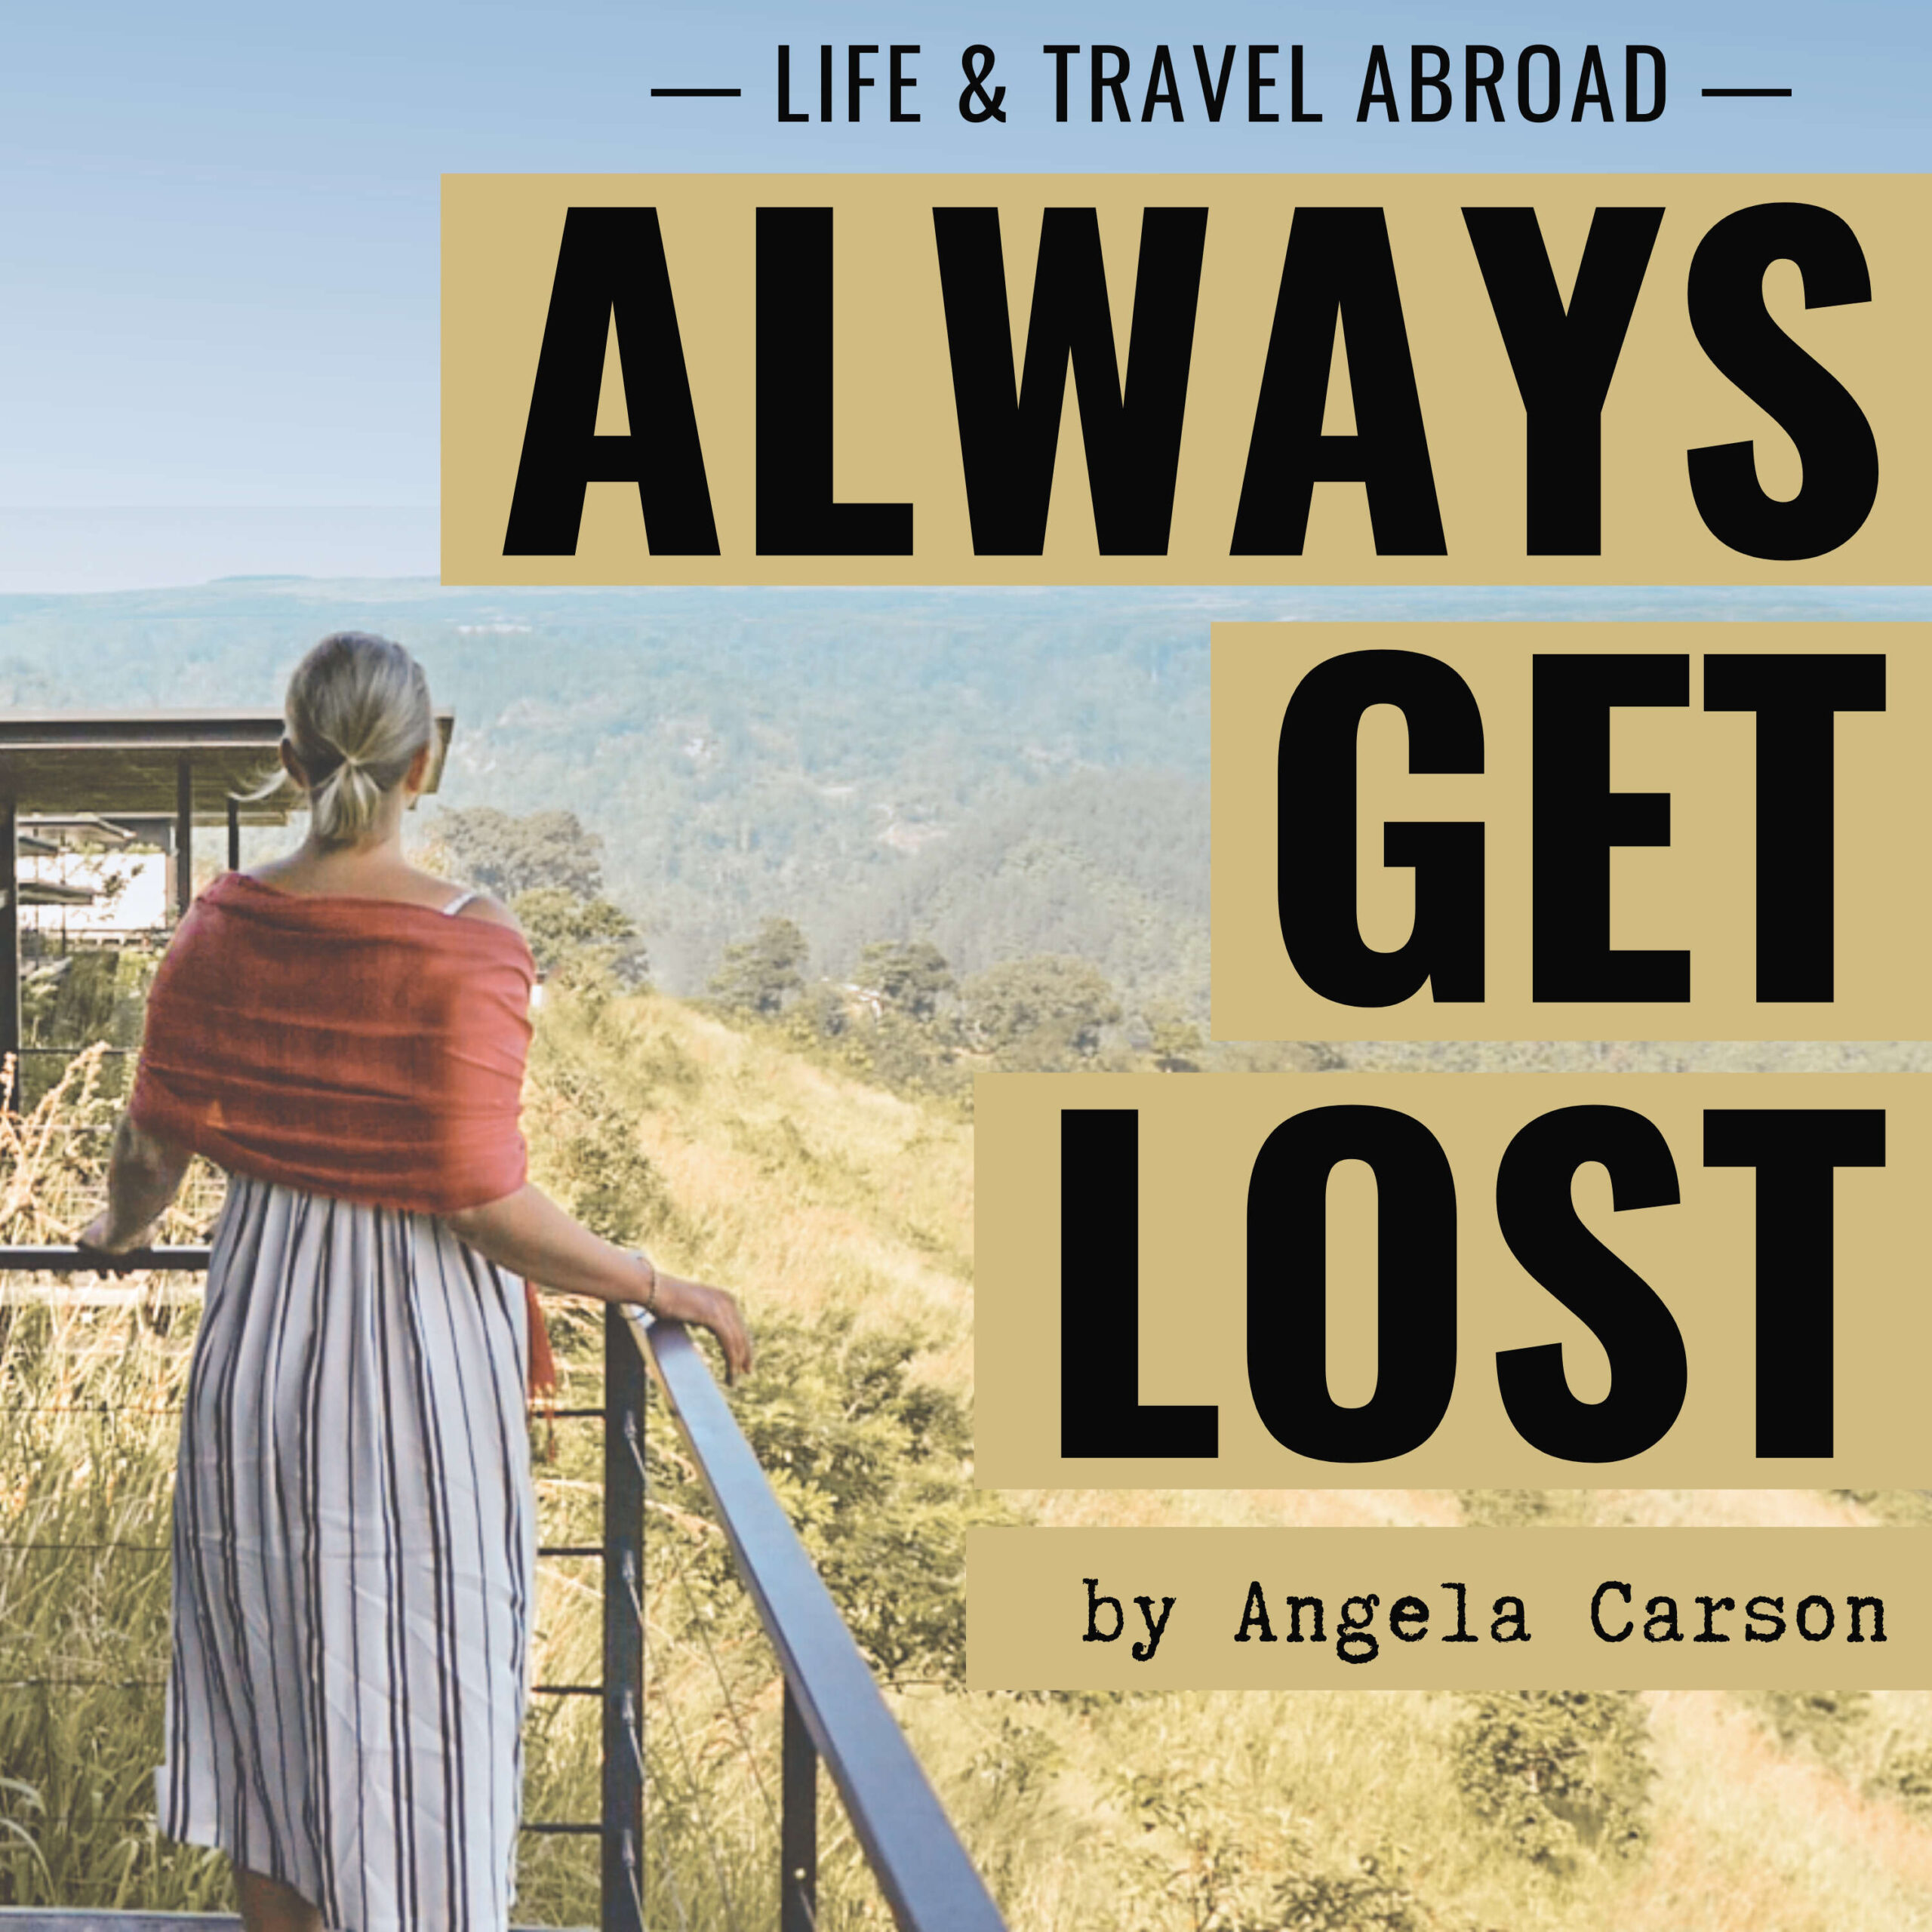 ALWAYS GET LOST by Angela Carson